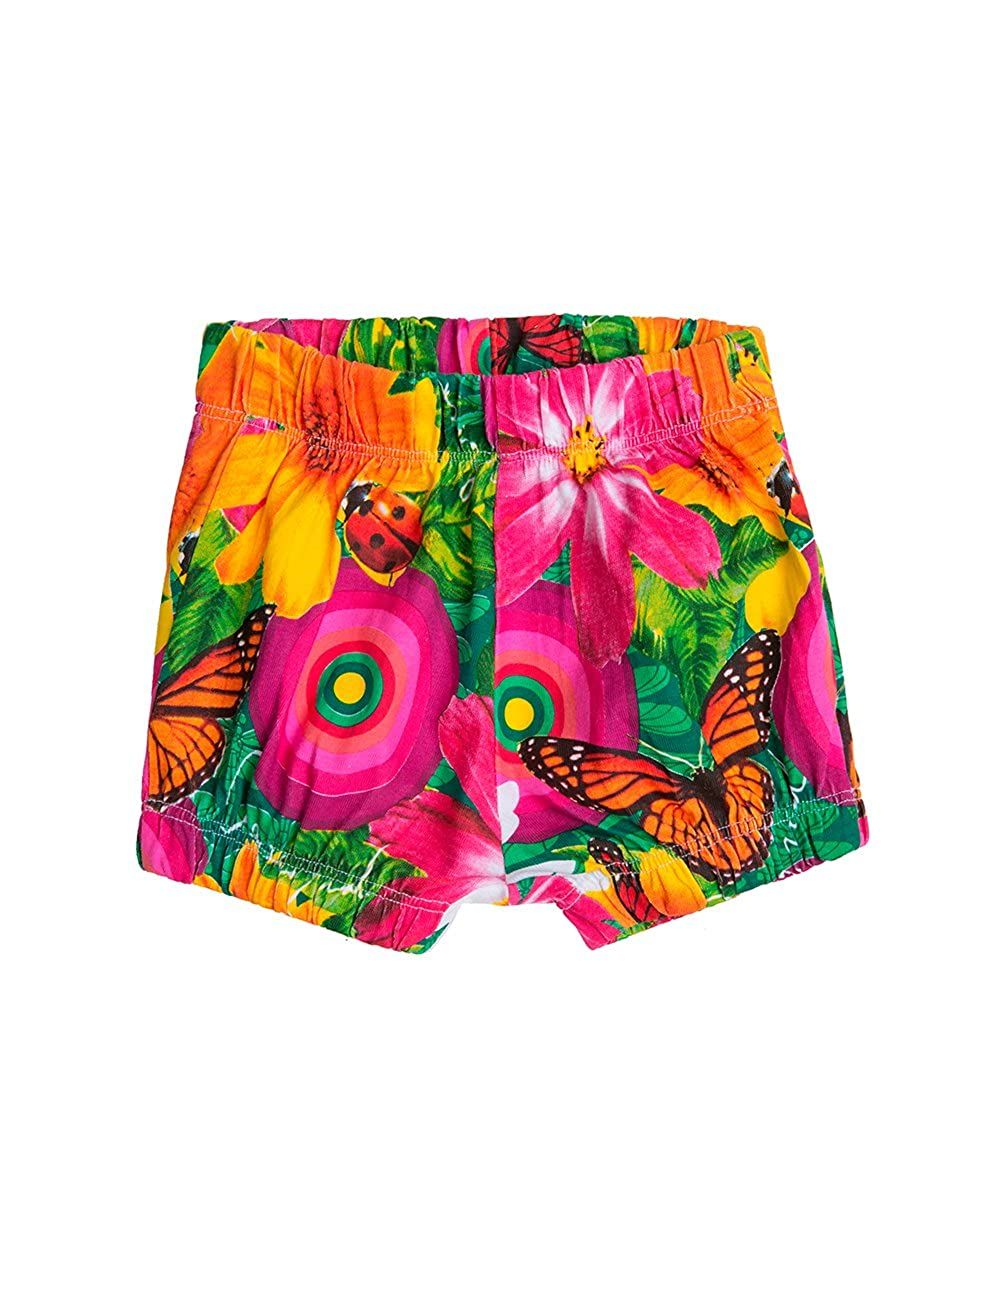 Desigual Baby Girls Sun Shorts 0-3 Months(Size:62) 61P38A4